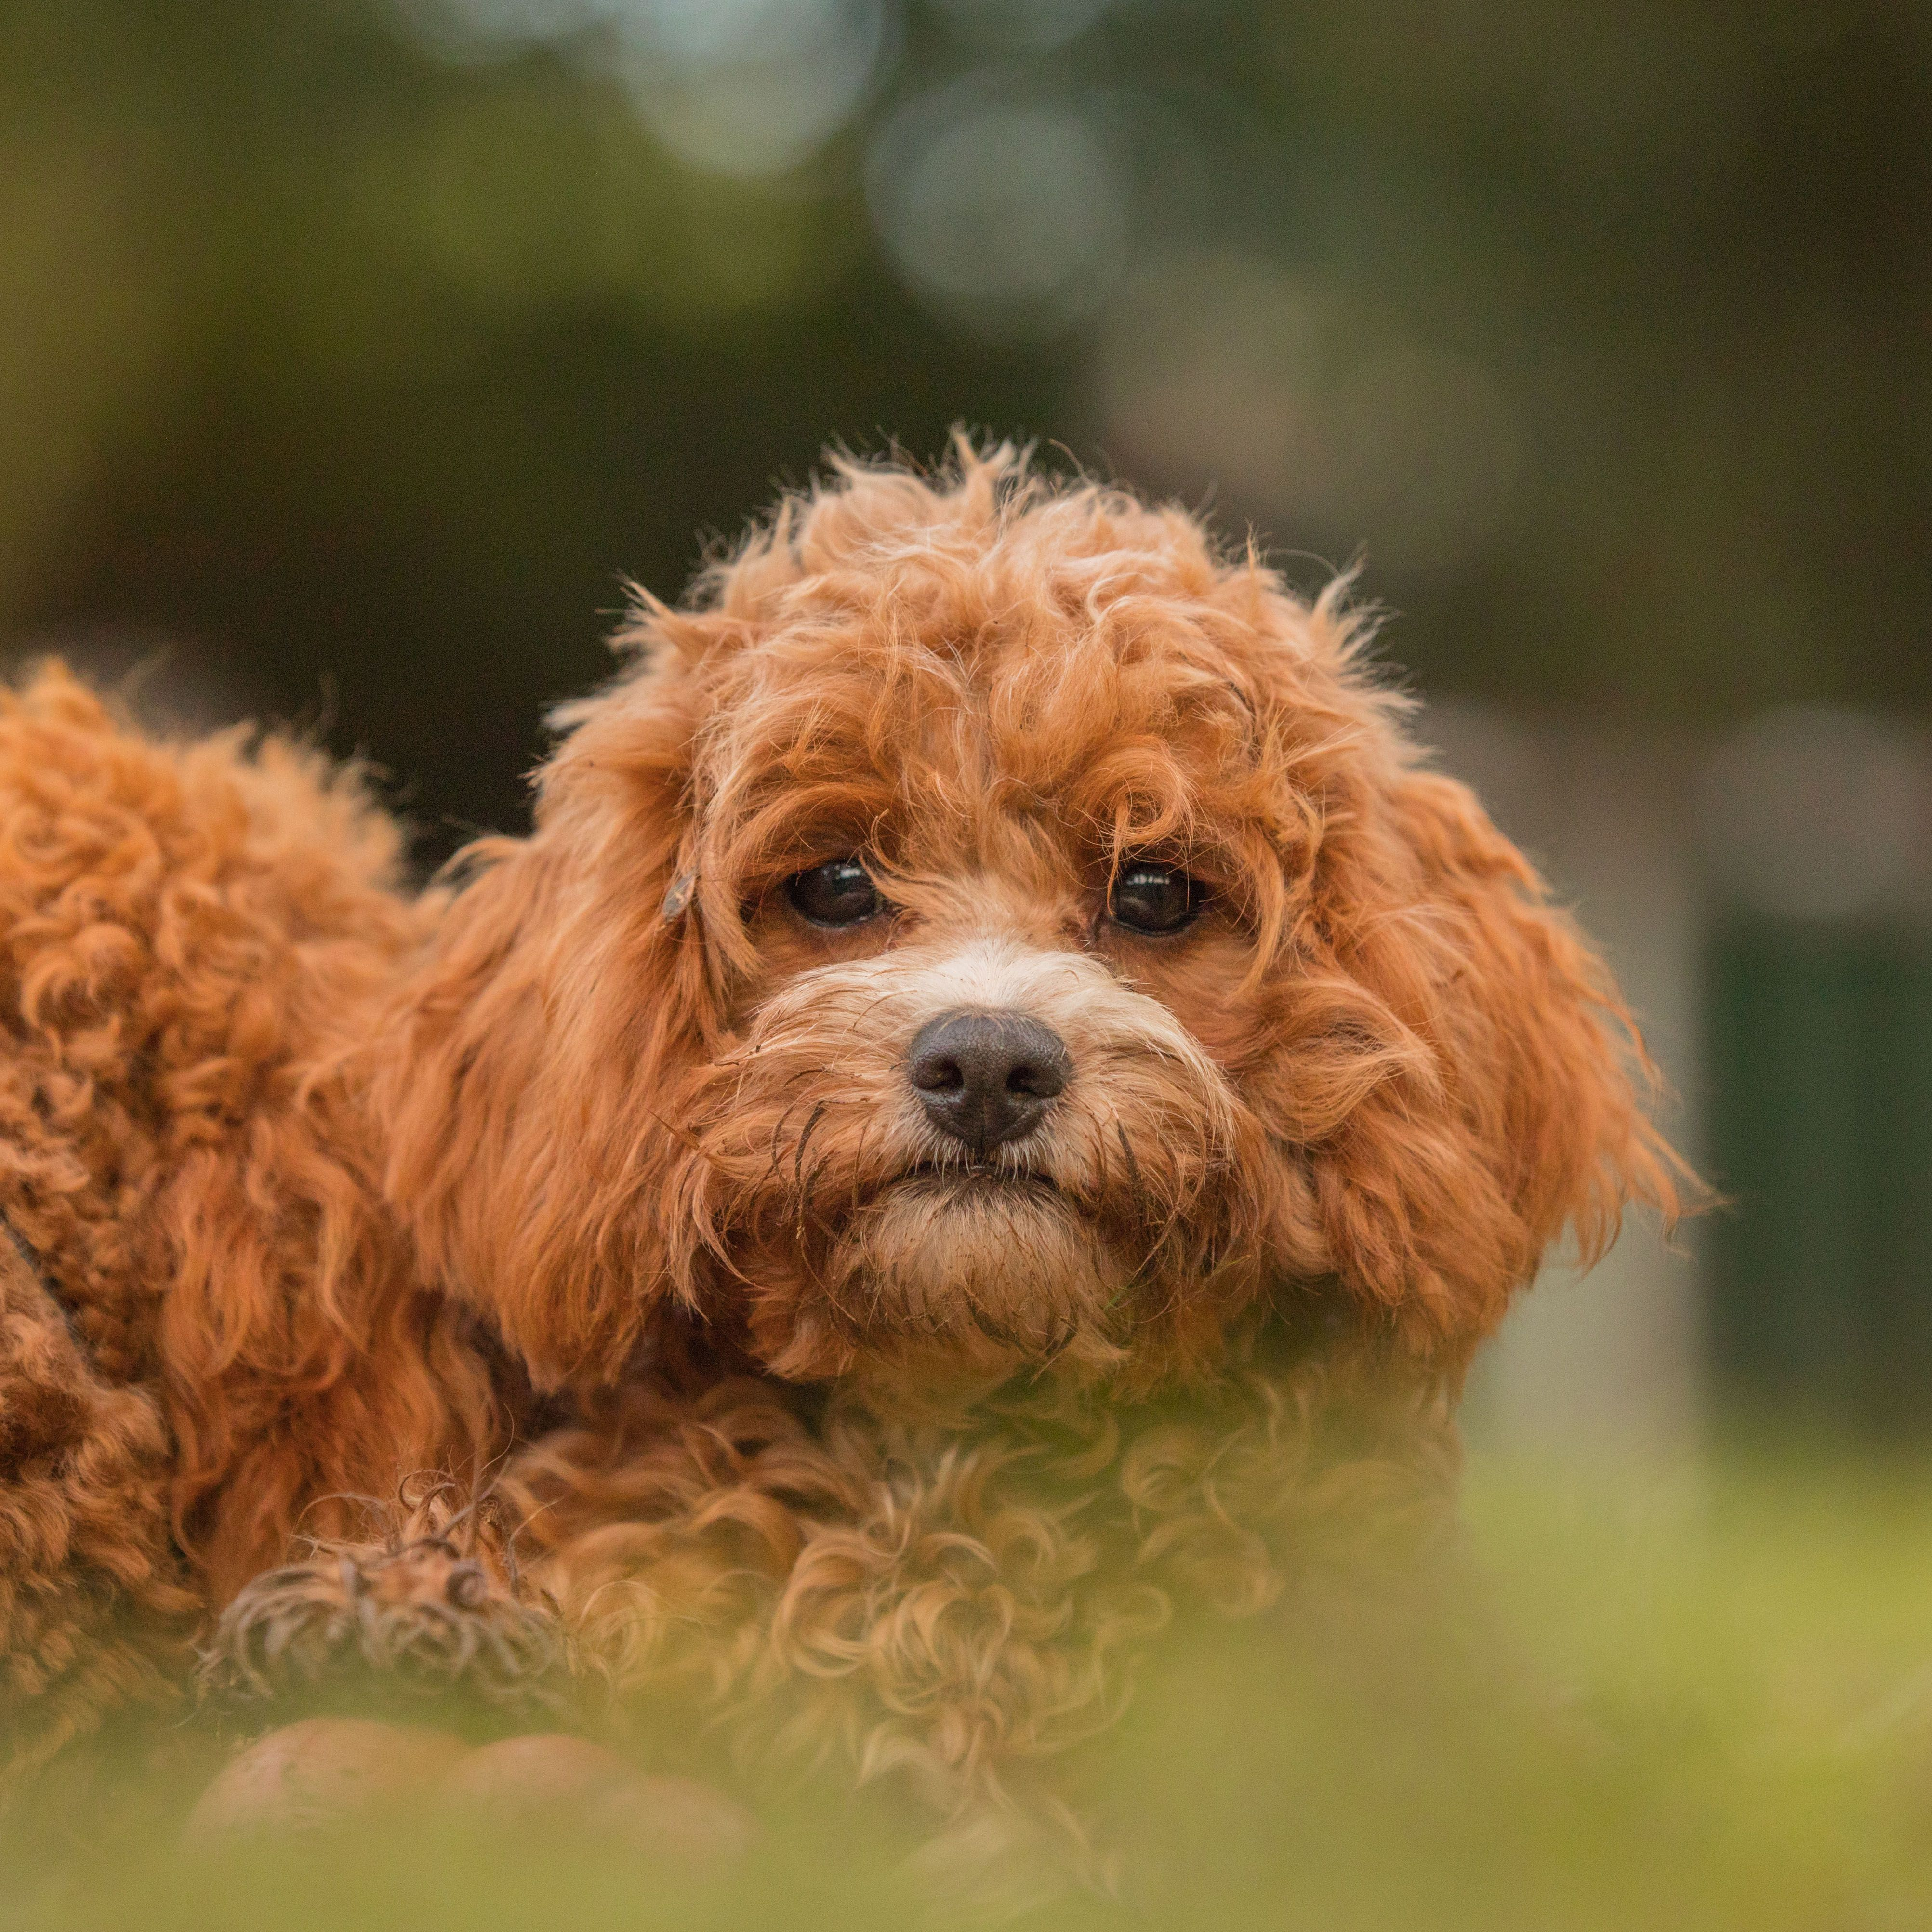 Zaria The Cavoodle Puppy Enjoying Some Down Time In Between Her